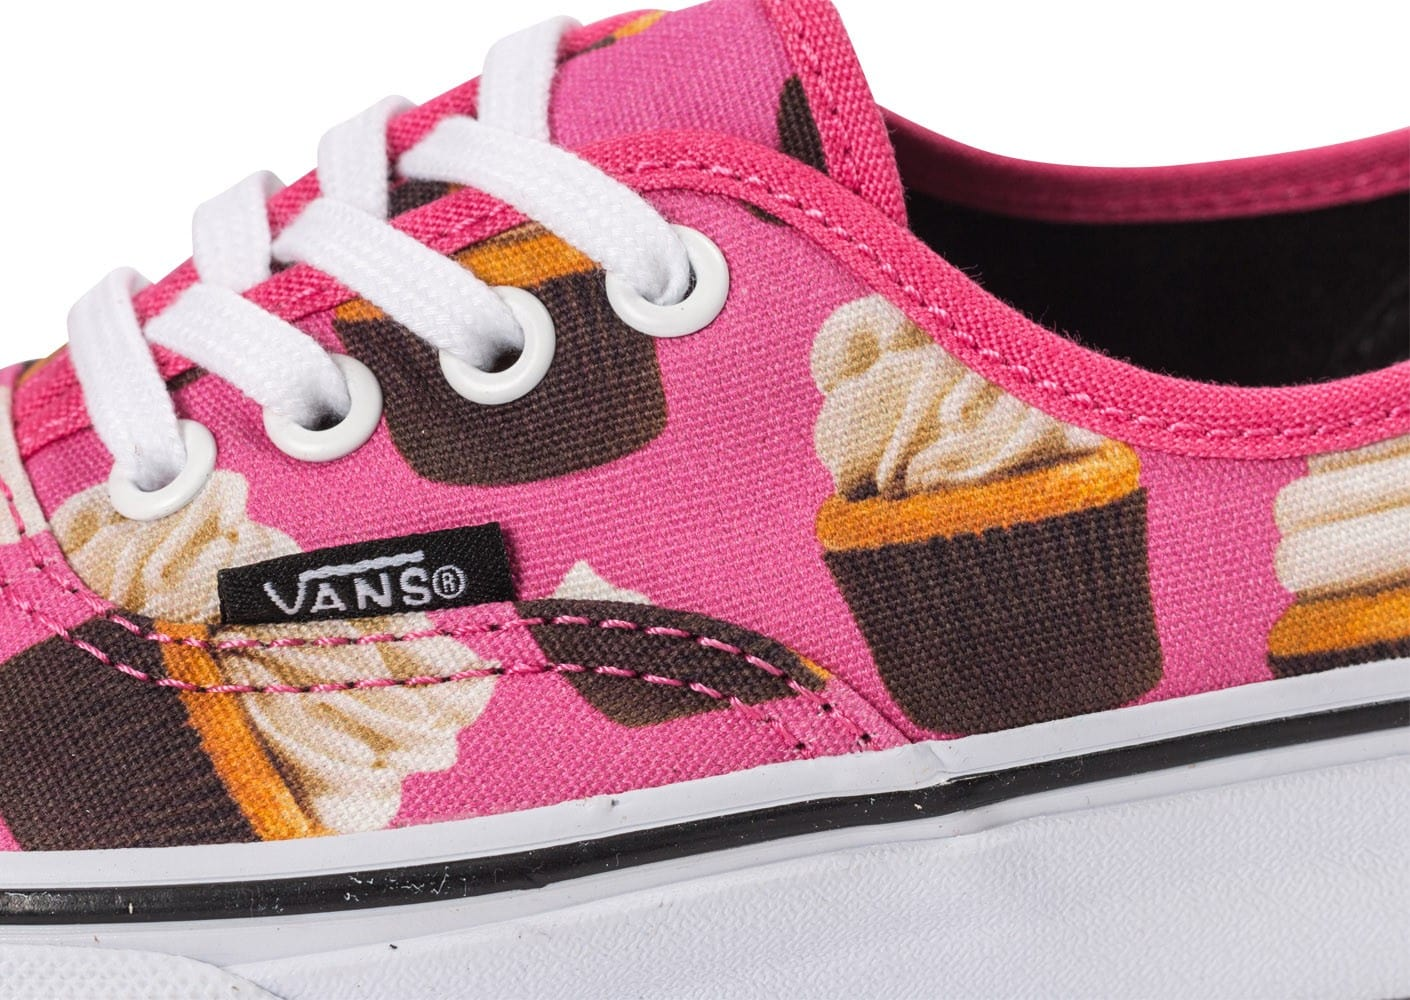 vans authentic enfant cupcake chaussures toutes les baskets sold es chausport. Black Bedroom Furniture Sets. Home Design Ideas